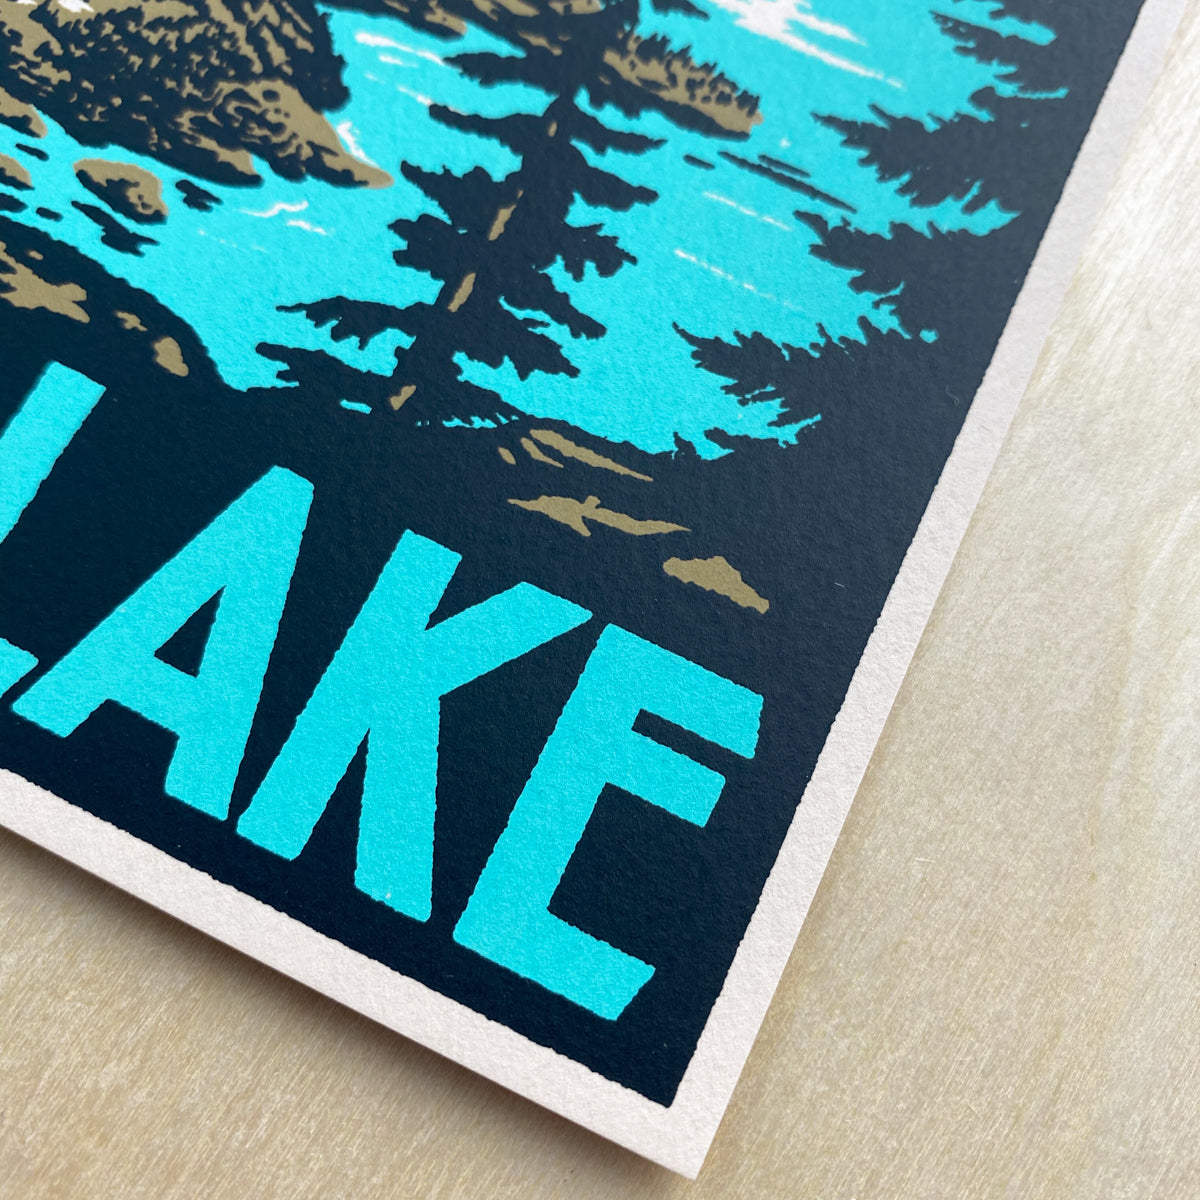 Crater Lake - Signed Print #186